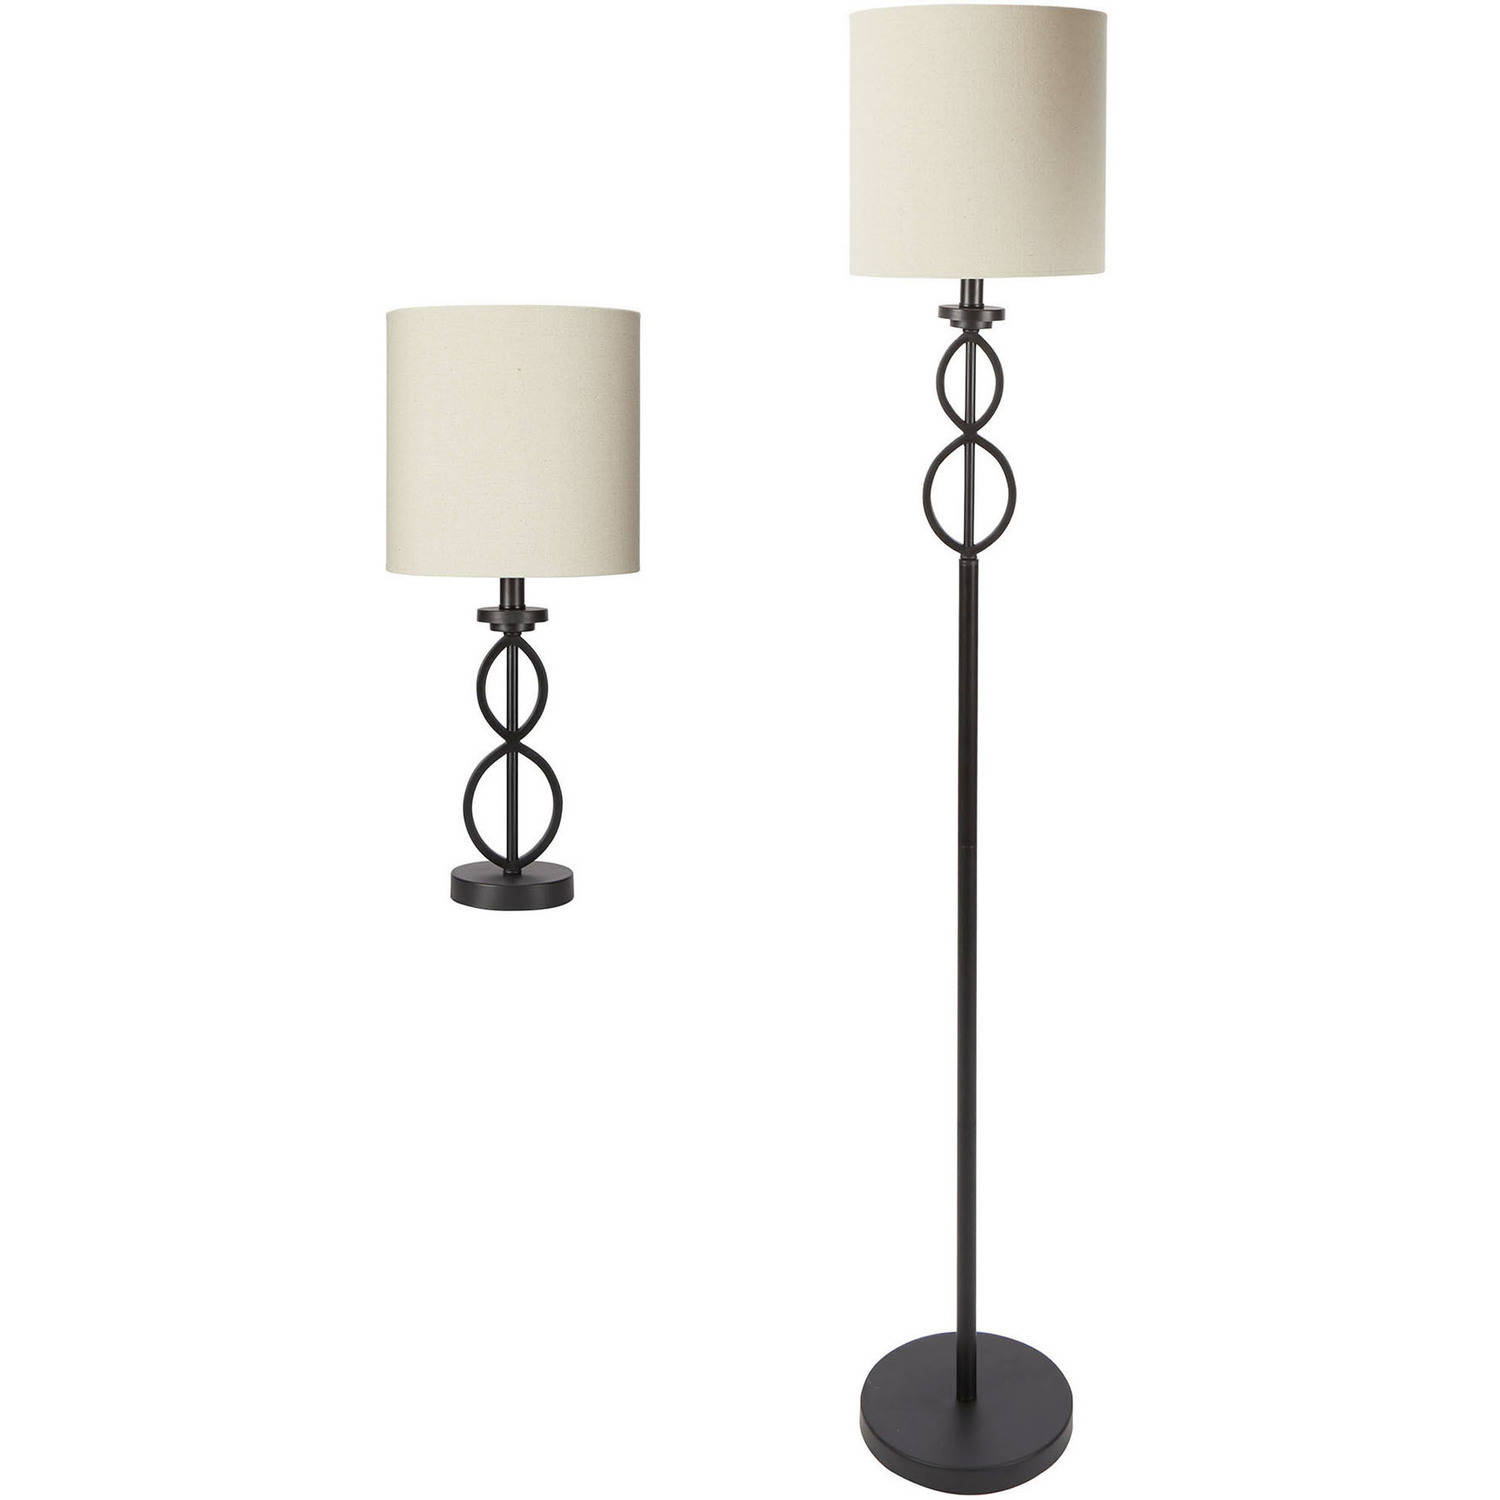 Mainstays Table and Floor L& Set Black Matte Finish  sc 1 st  Walmart & Mainstays Table and Floor Lamp Set Black Matte Finish - Walmart.com